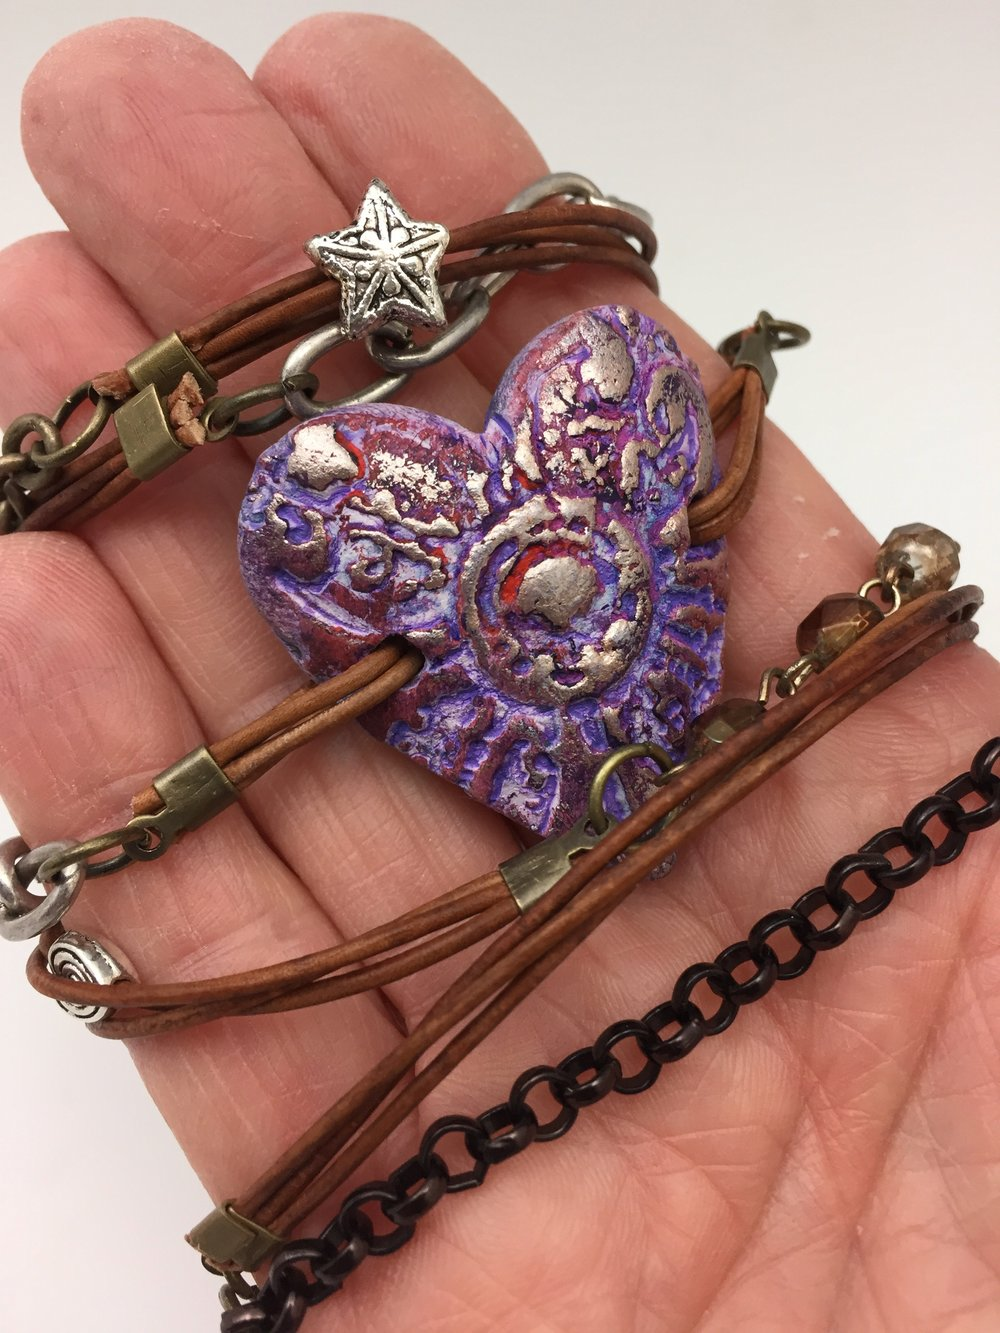 Do you like jewelry? Want to take that passion one step further? Sign up for my wrap bracelet craft party sponsored by The Muse in Frederick, MD! I'd love to see you on Wedesdnay, June 21. I'll bring the supplies (and a batch of my chocolate chip cookies!) and help you make one of these special creations of your own. Click on photo for more details.